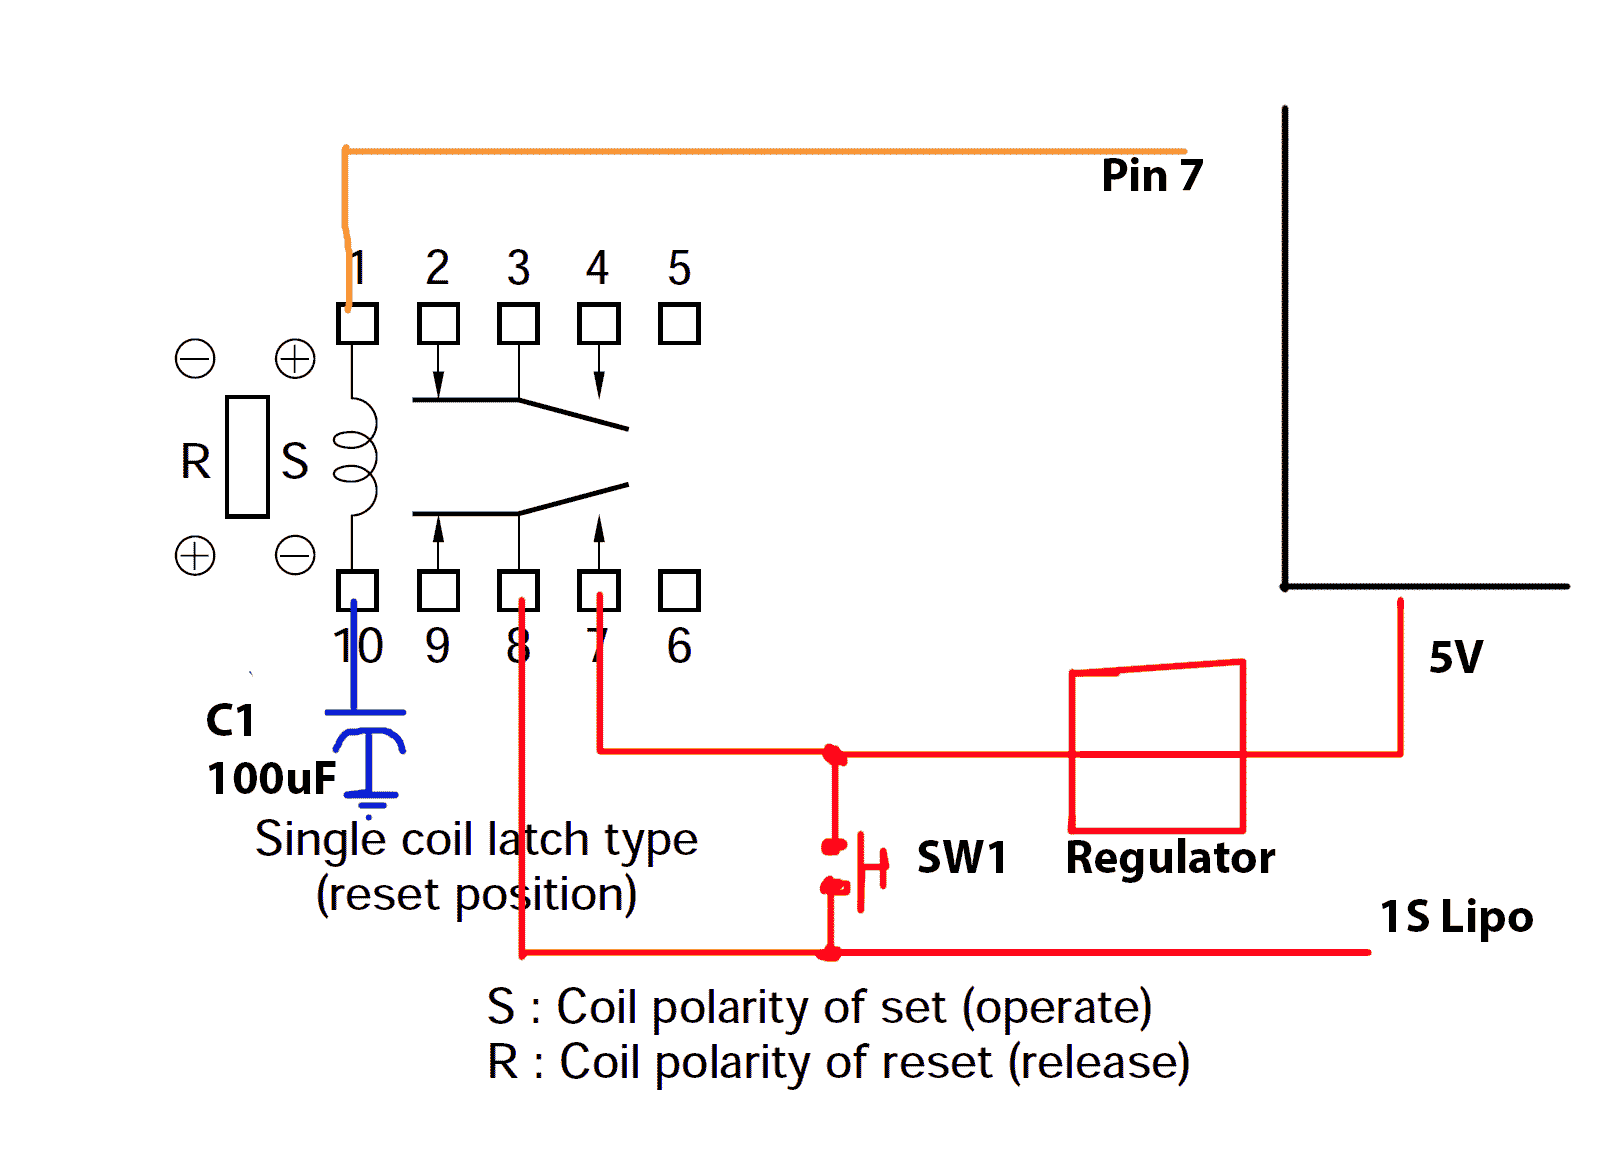 Reset A Single Coil Latching Relay On Power Up How Under Current Pdf Im Using These Relays Http Datasheetcatalogcom Datasheet Nec Eb2 3snuepdf In Order To Down My Project When Voltage